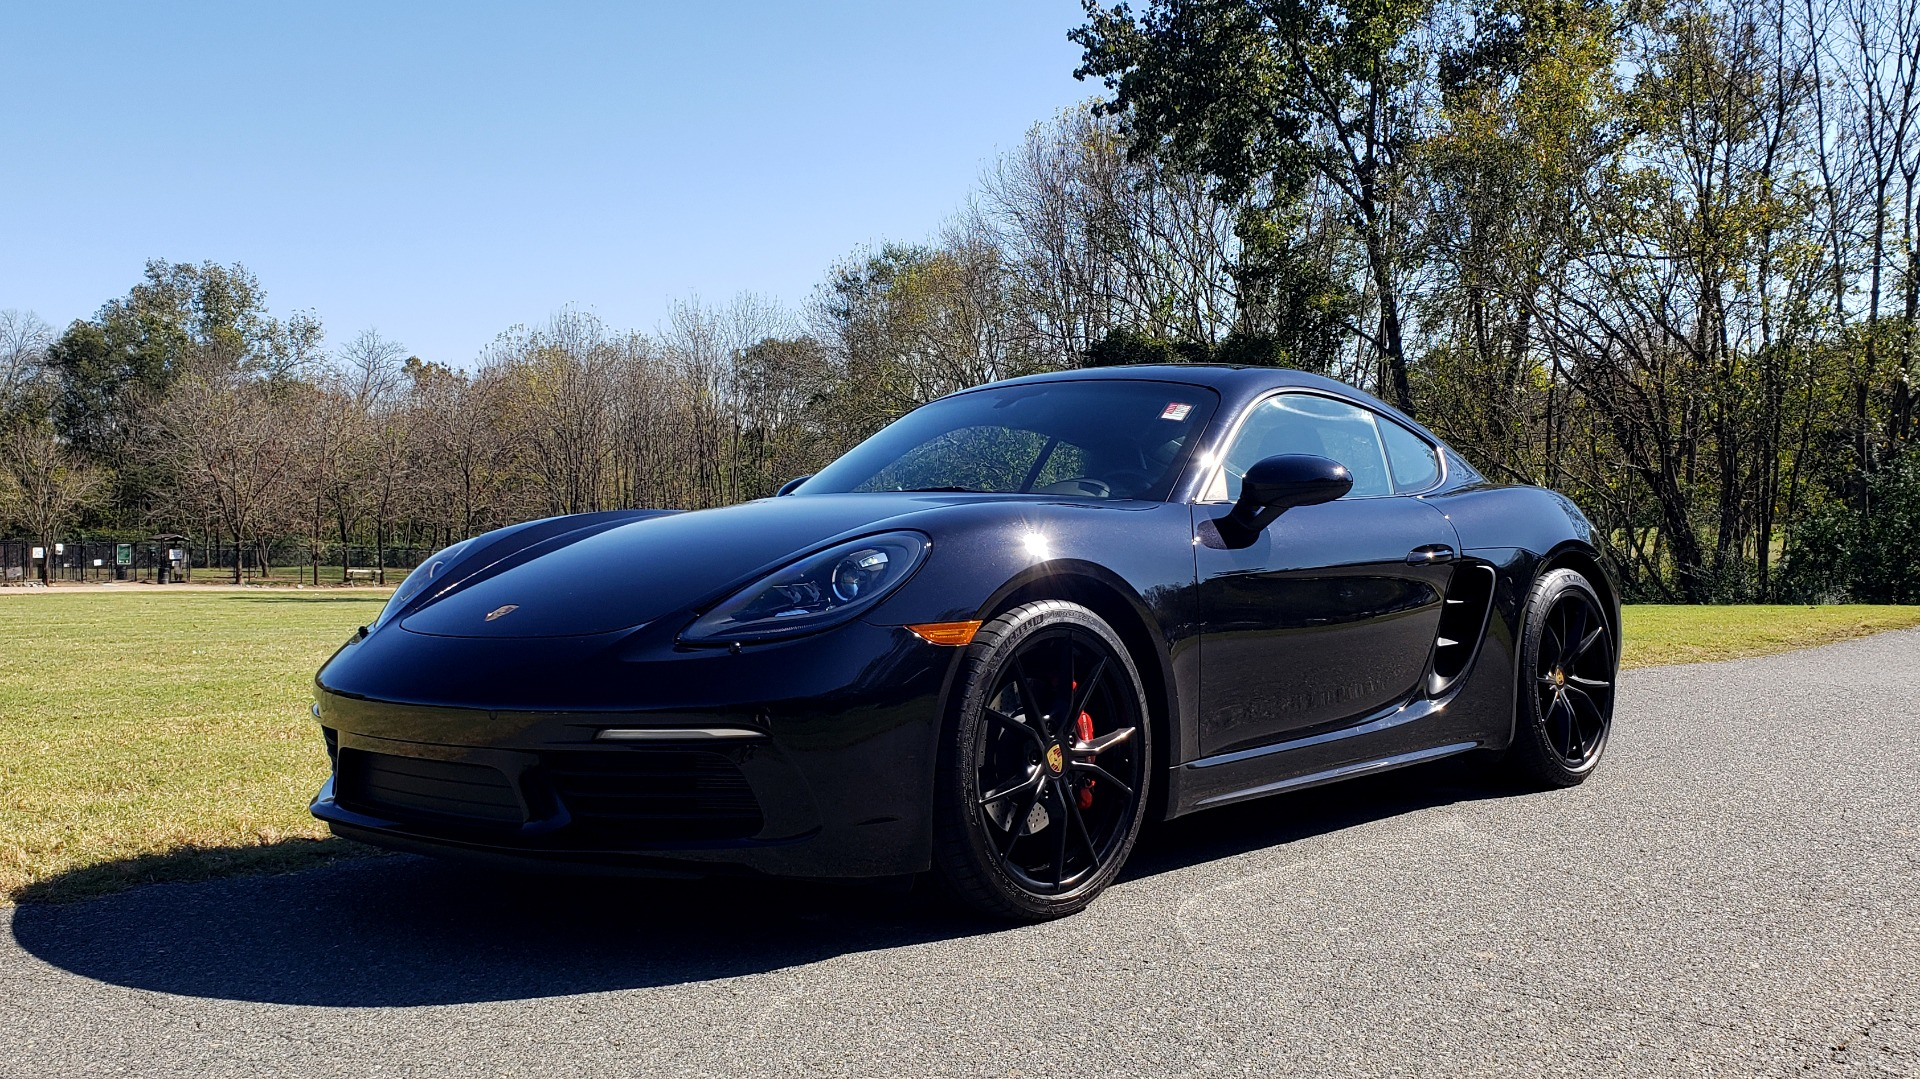 Used 2019 Porsche 718 CAYMAN S COUPE / PDK TRANS / LCA / BOSE / HTD STS / LIGHT DESIGN PKG for sale $67,999 at Formula Imports in Charlotte NC 28227 2